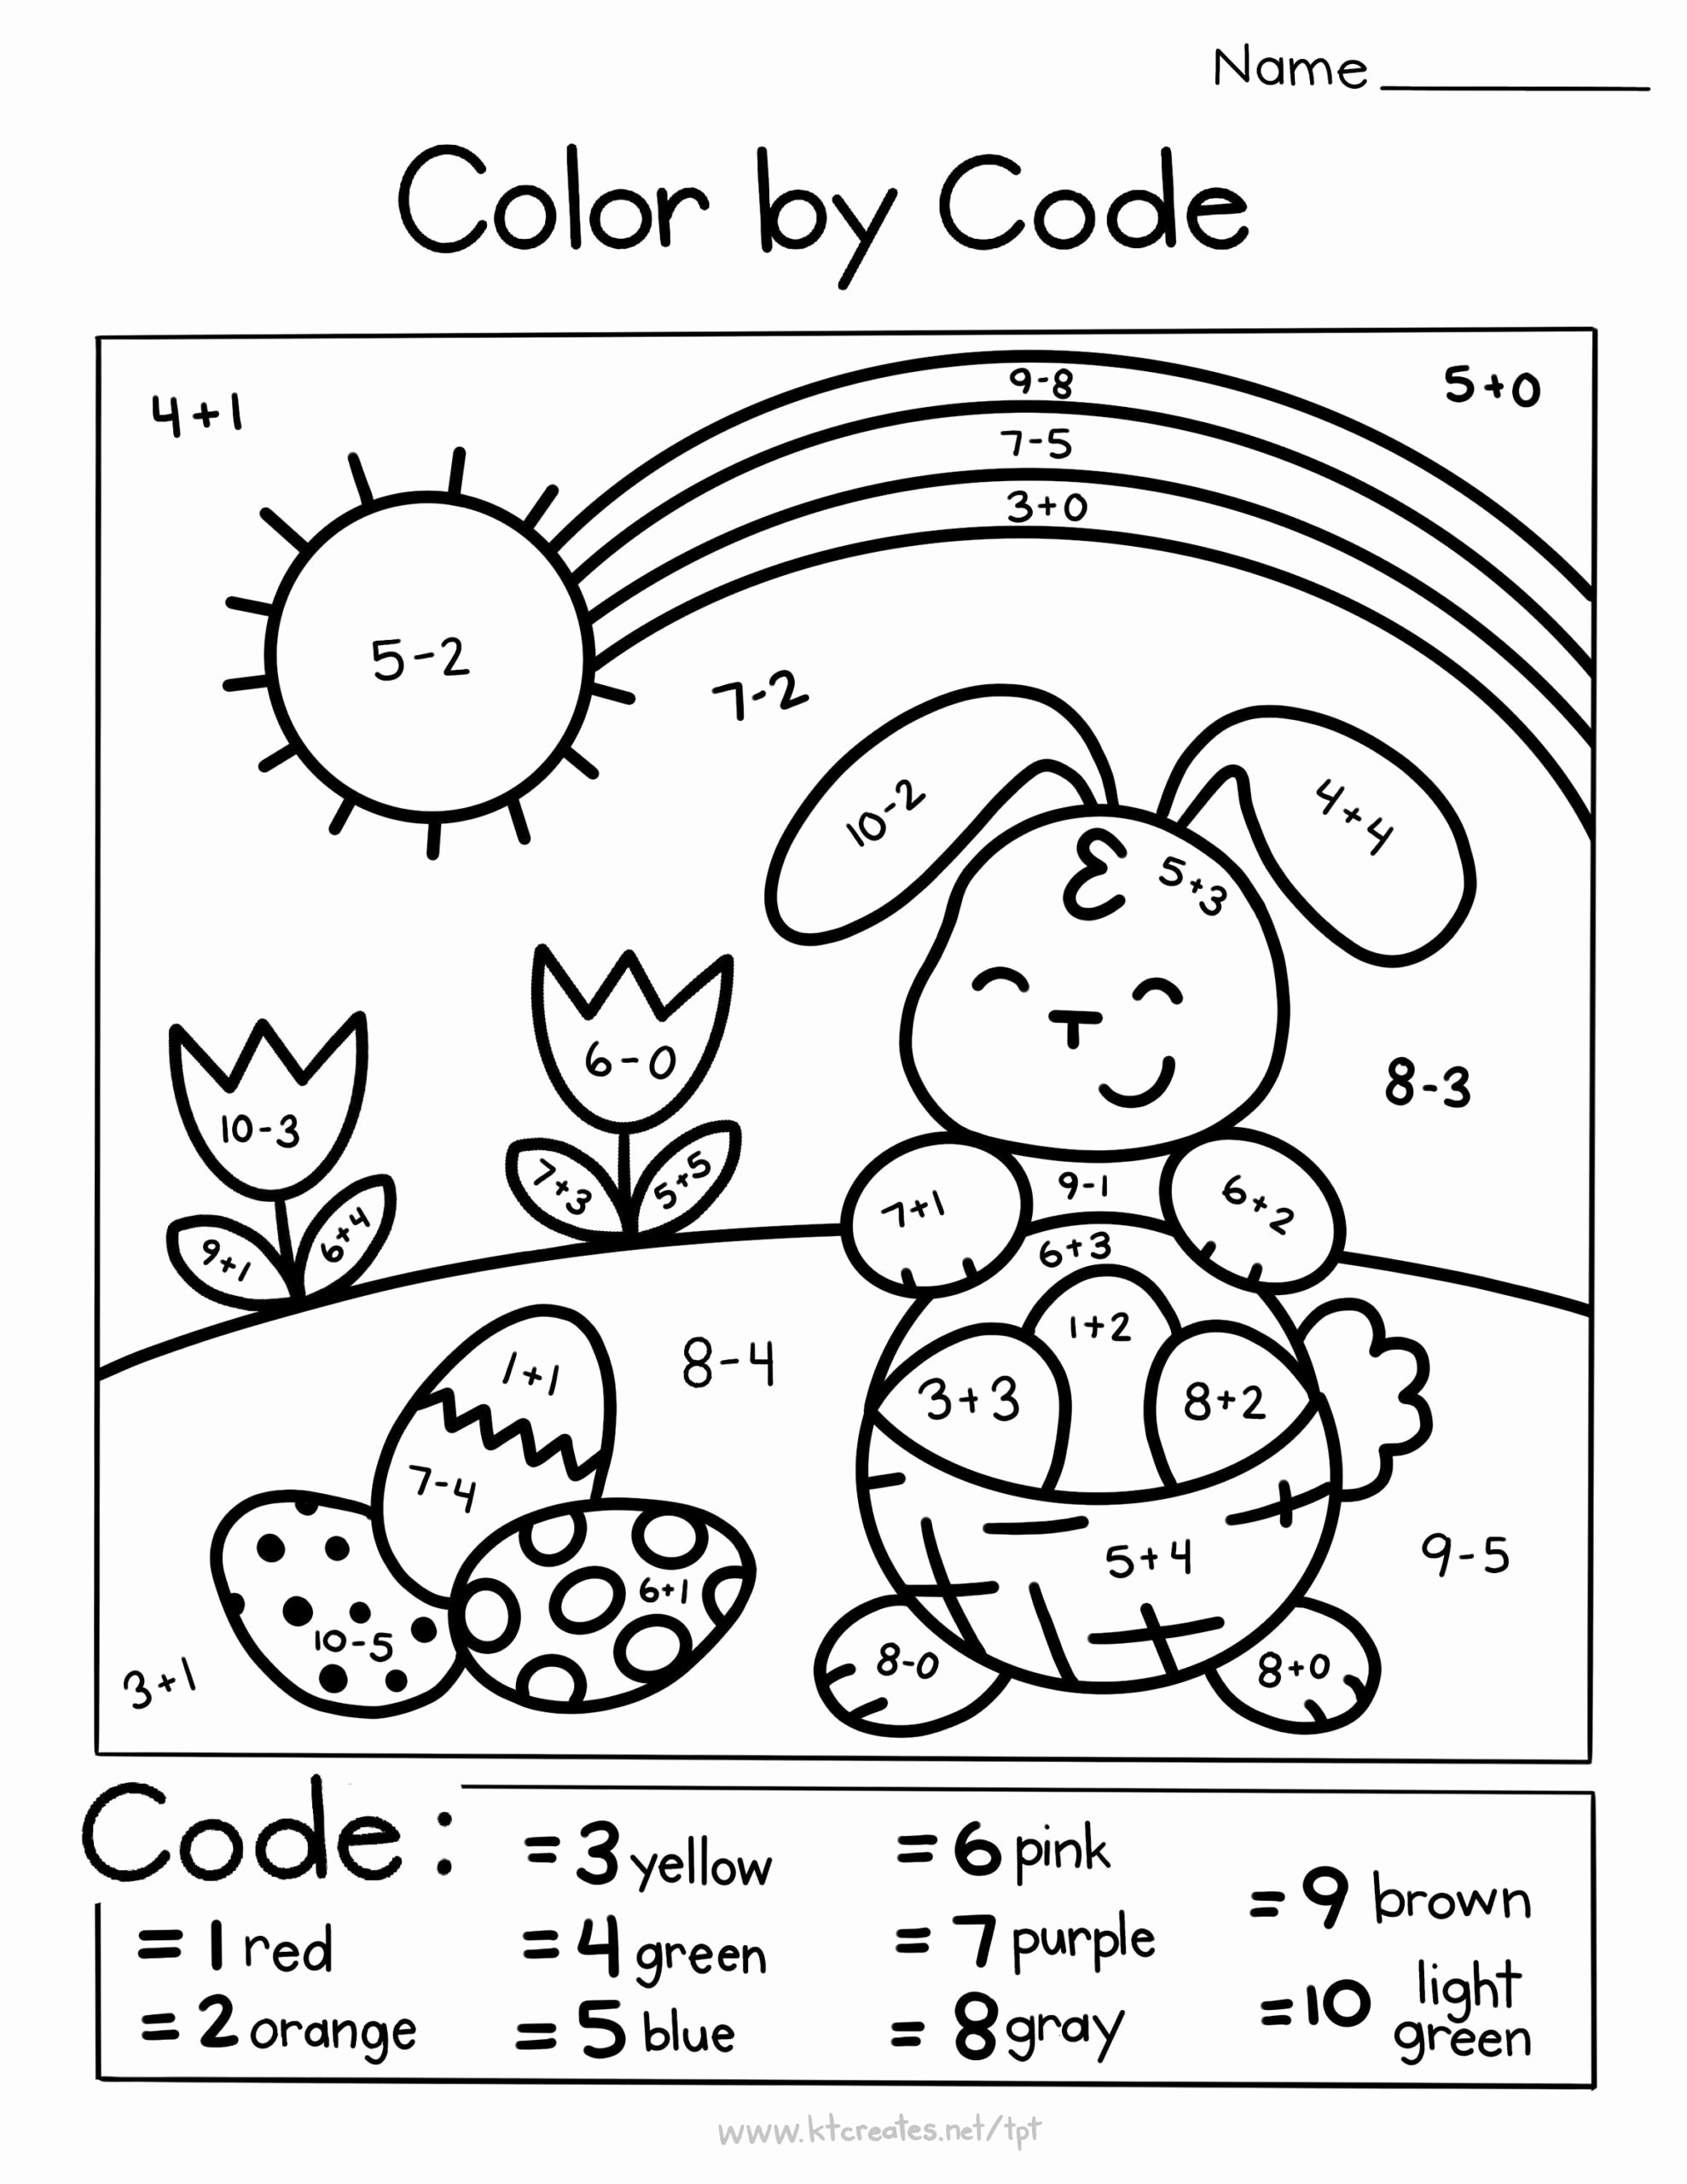 Measurement Worksheets for Preschoolers Inspirational Worksheets Baltrop 4th Grade Math Papers 5th Measurement